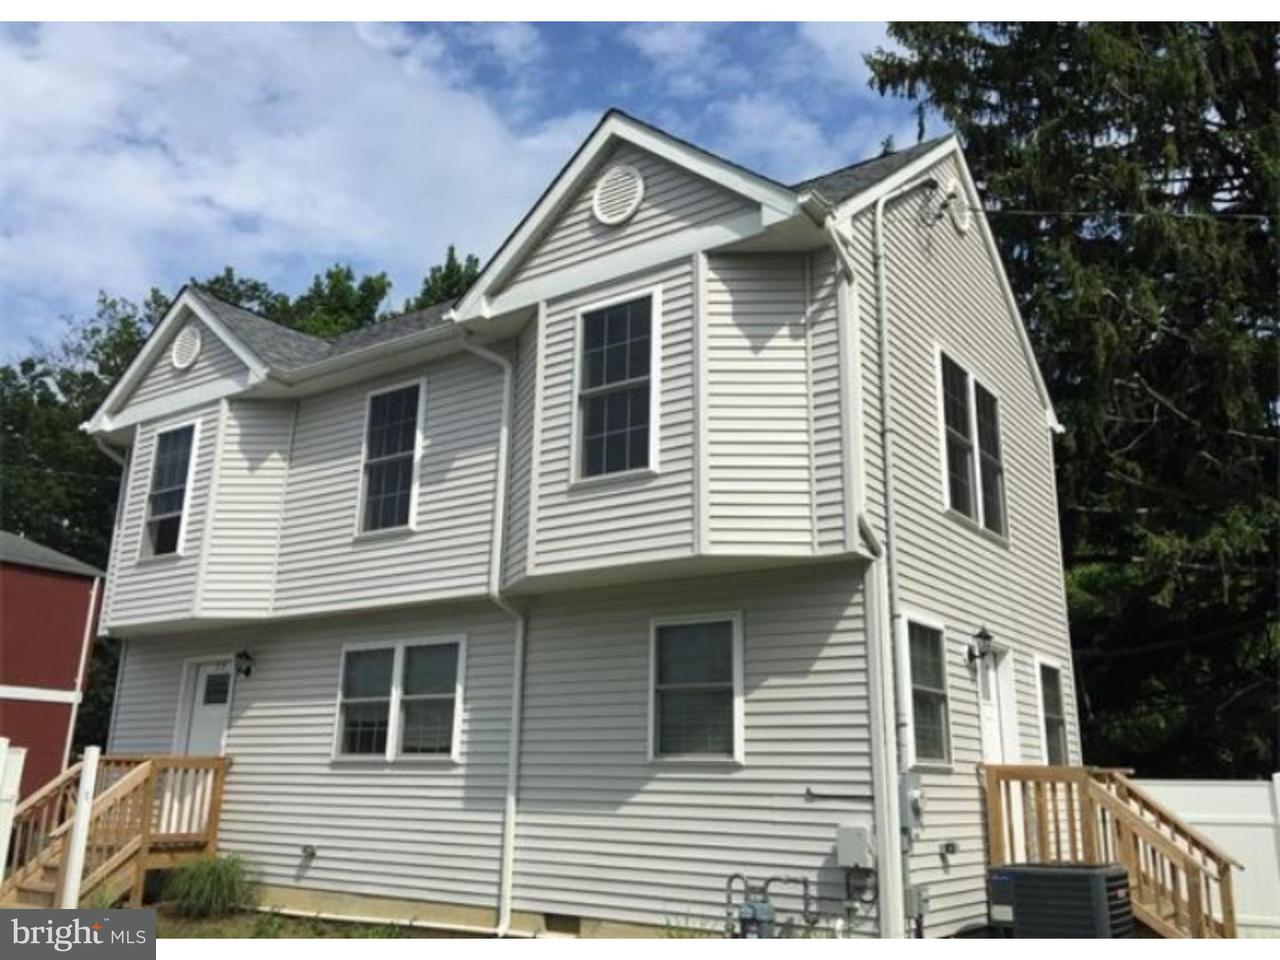 Townhouse for Rent at 97-99 PENNSYLVANIA Avenue Ewing, New Jersey 08638 United StatesMunicipality: Ewing Township